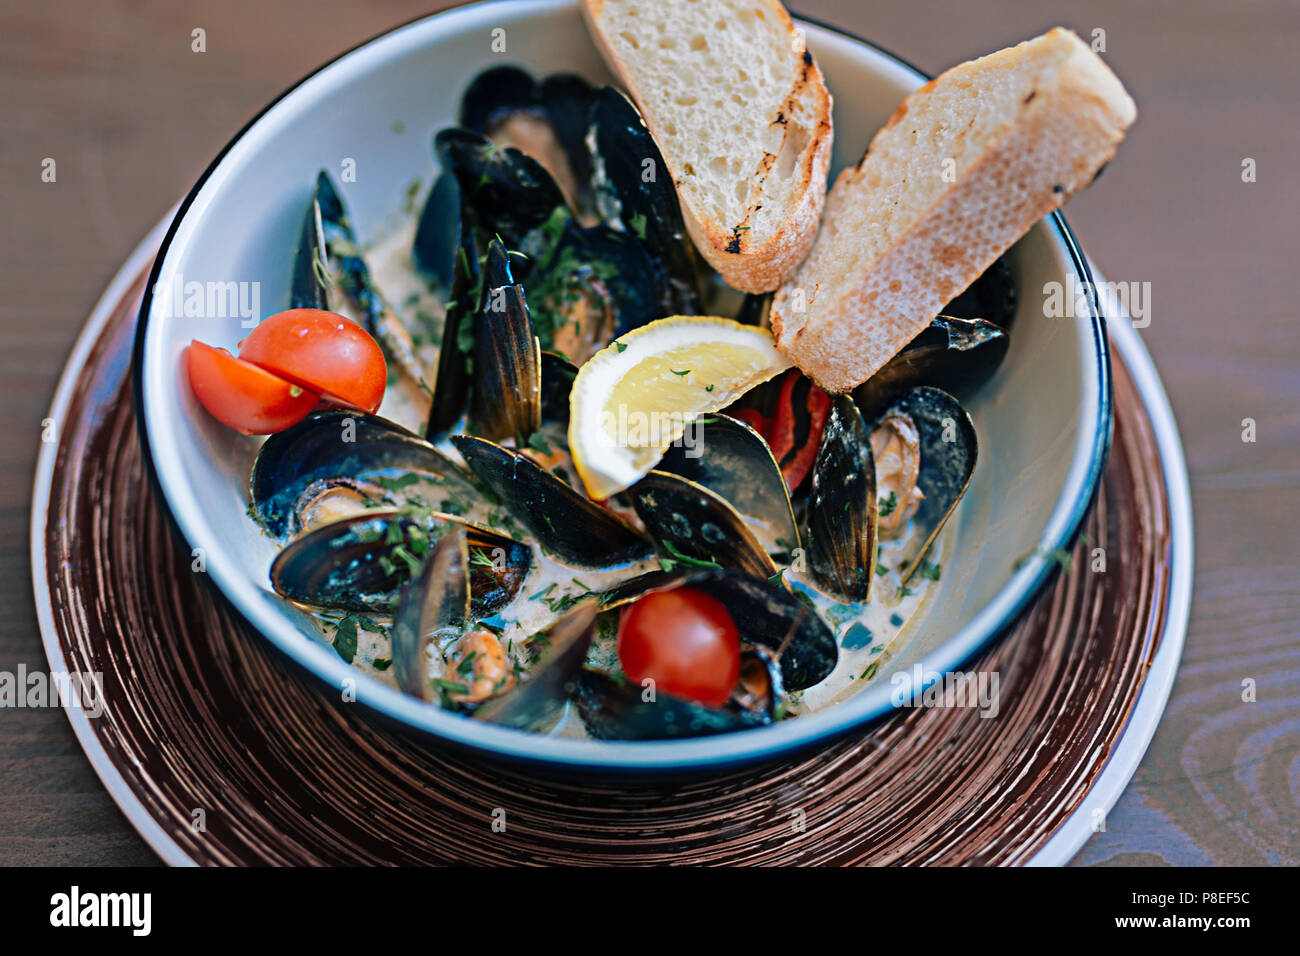 Mussels dish with some bread and little tomatoes Stock Photo